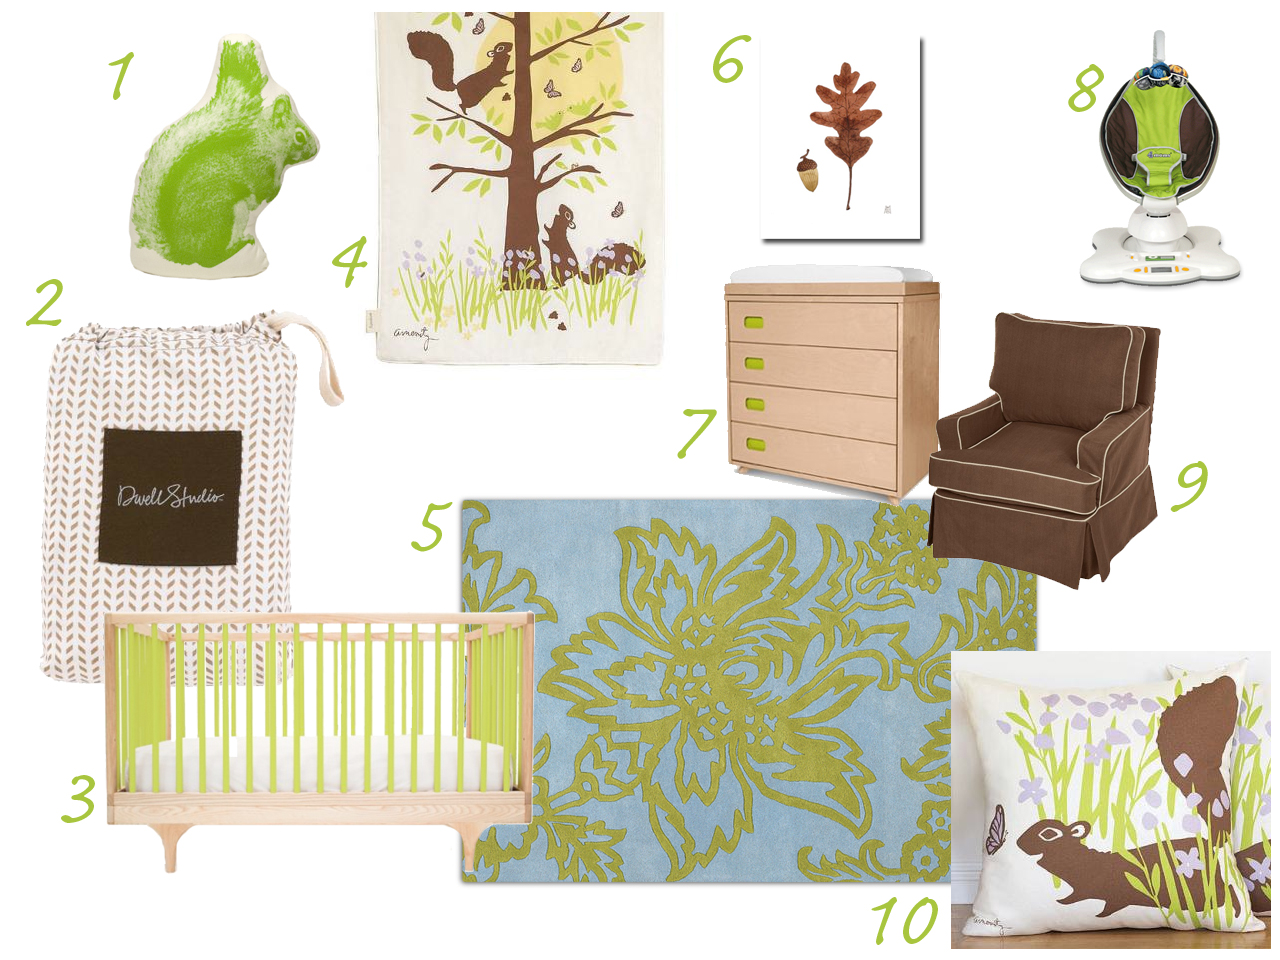 Green and brown and squirrels nursery Kalon Caravan DwellStudios Amenity Amy Butler Tulip